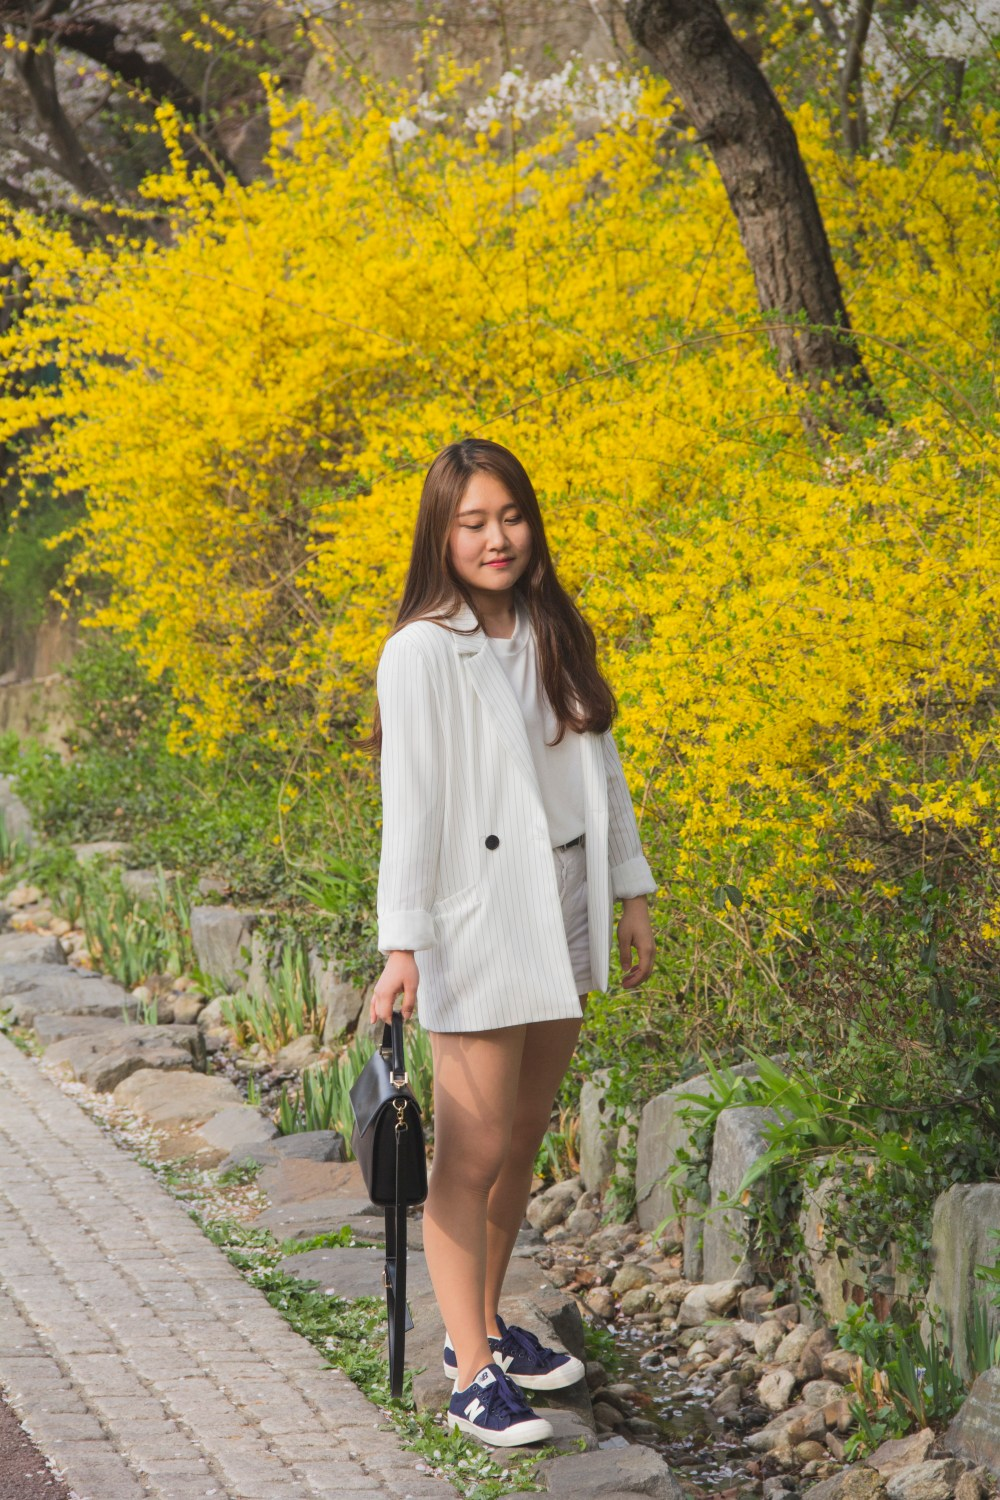 Portrait Photographer | Spring at Namsan Park Seoul South Korea